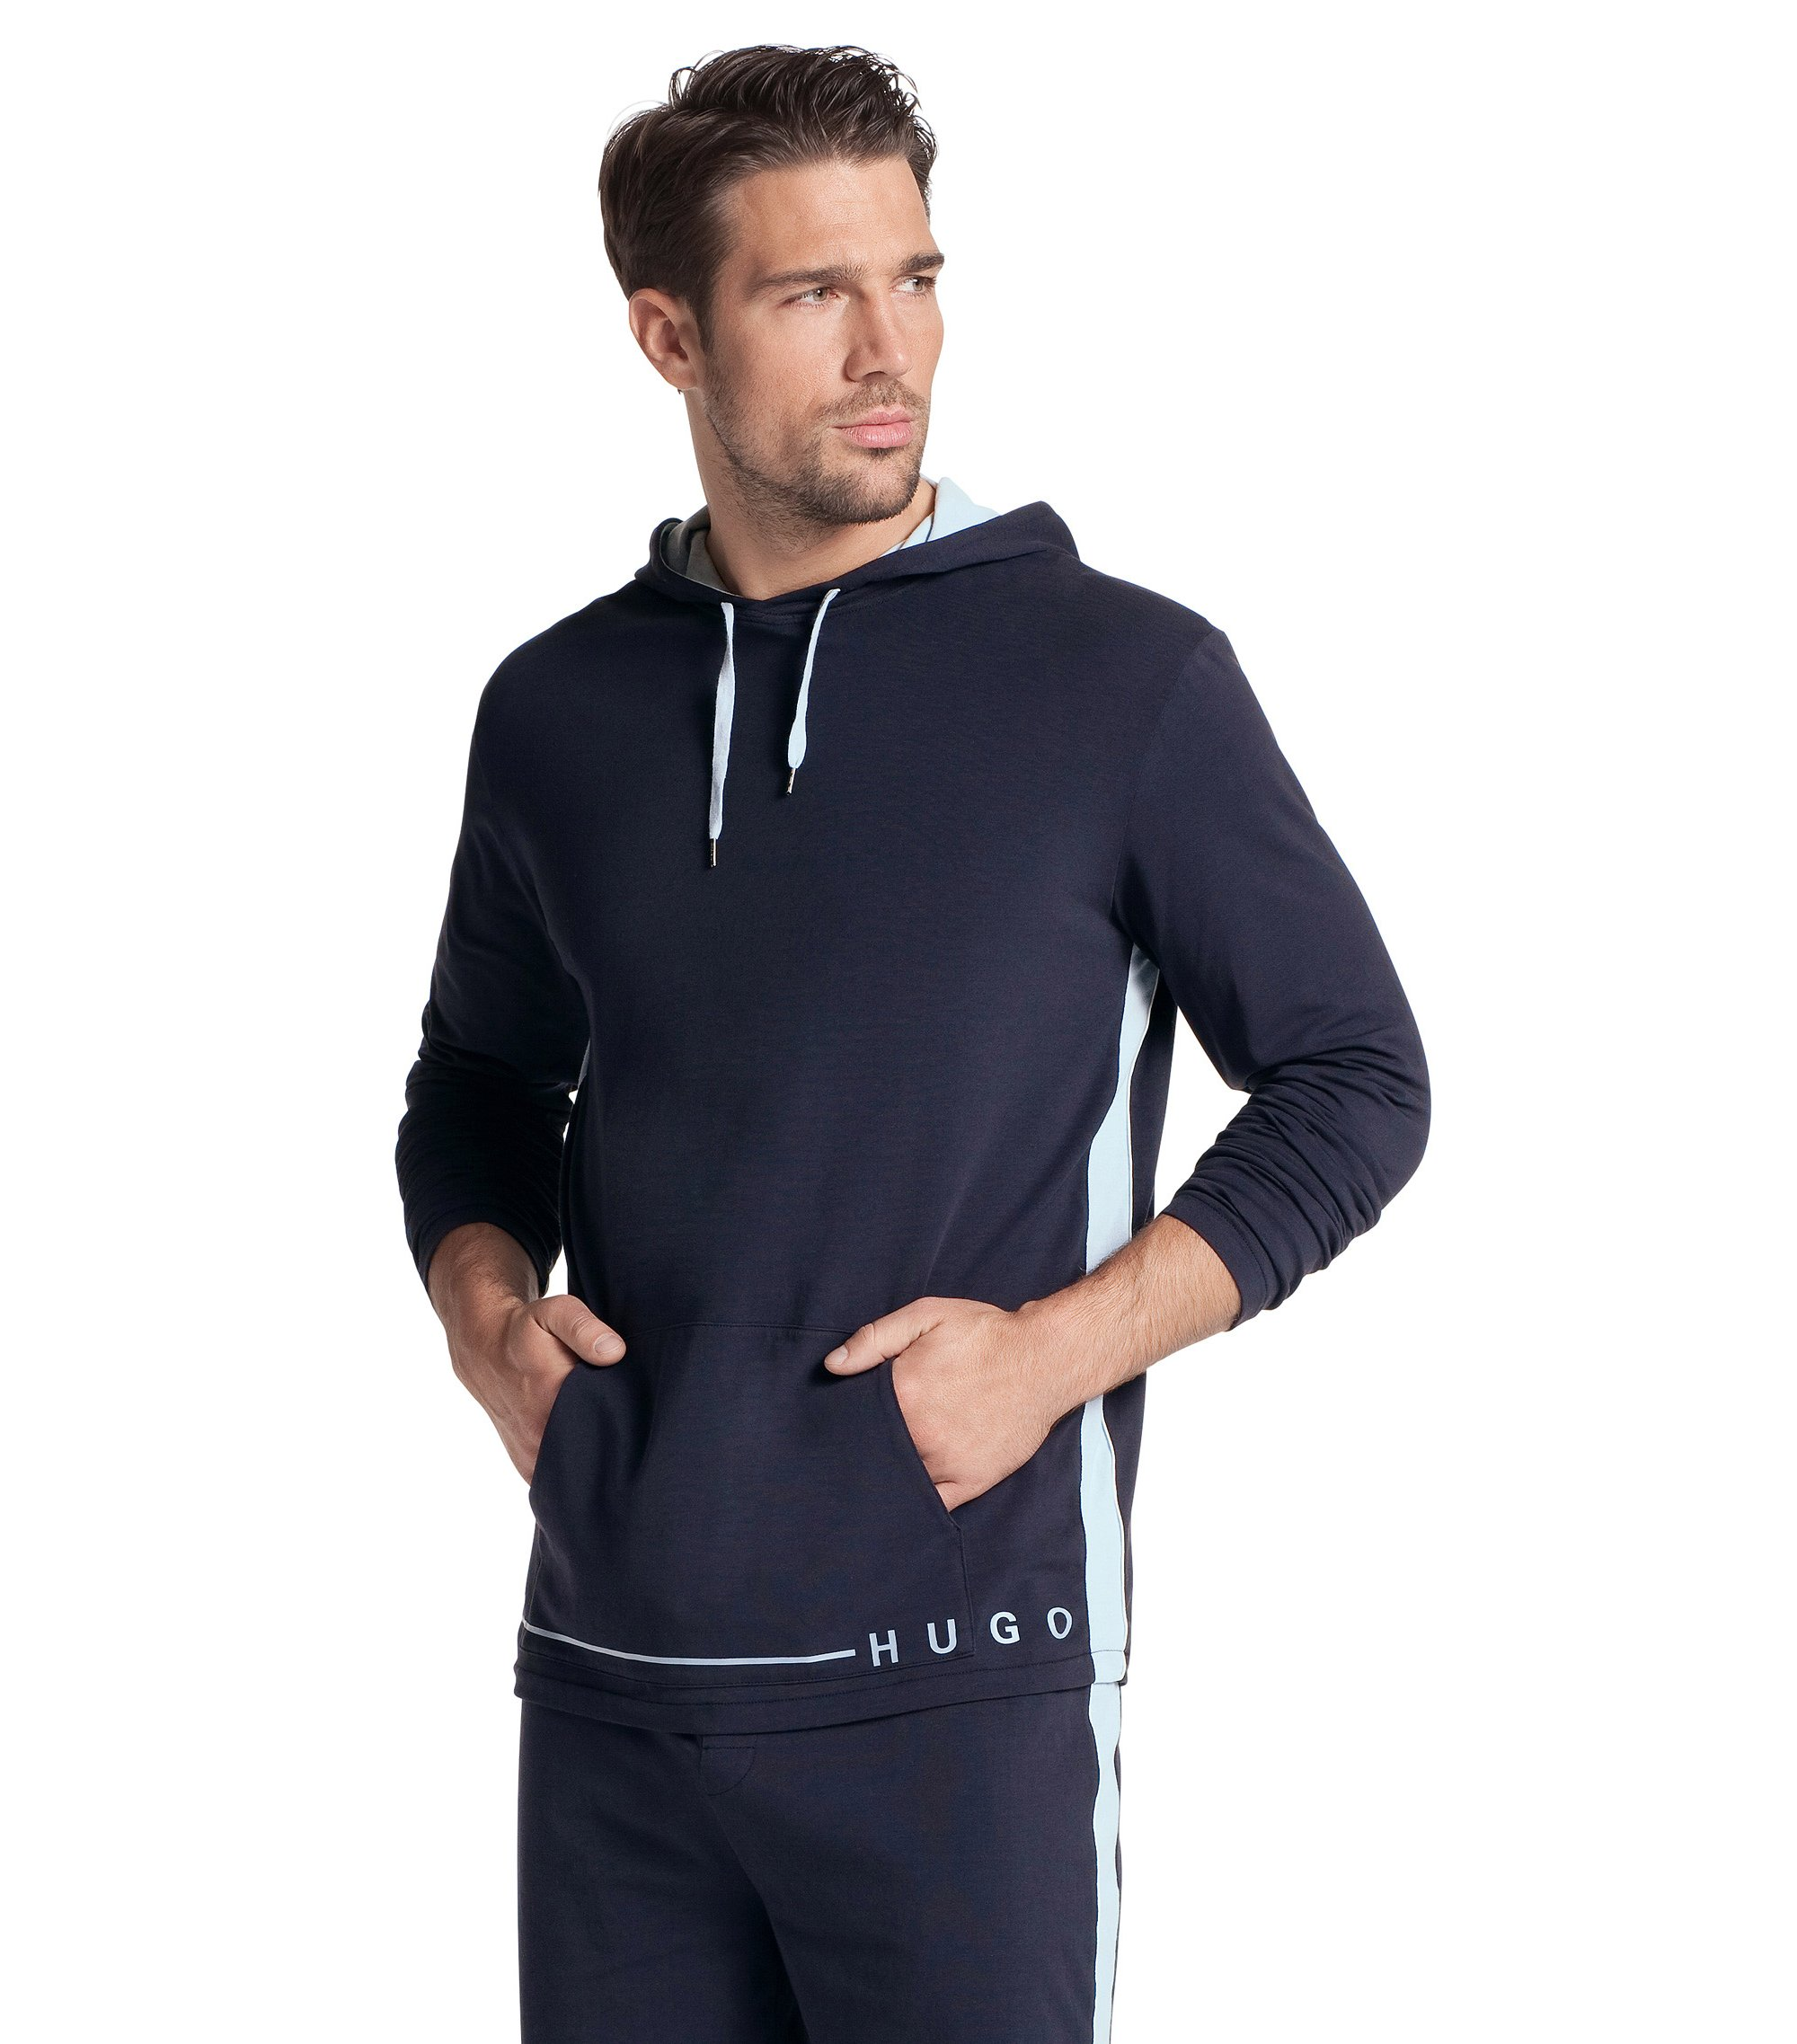 Sweat-shirt à capuche, Shirt Hooded LS BM, Bleu foncé